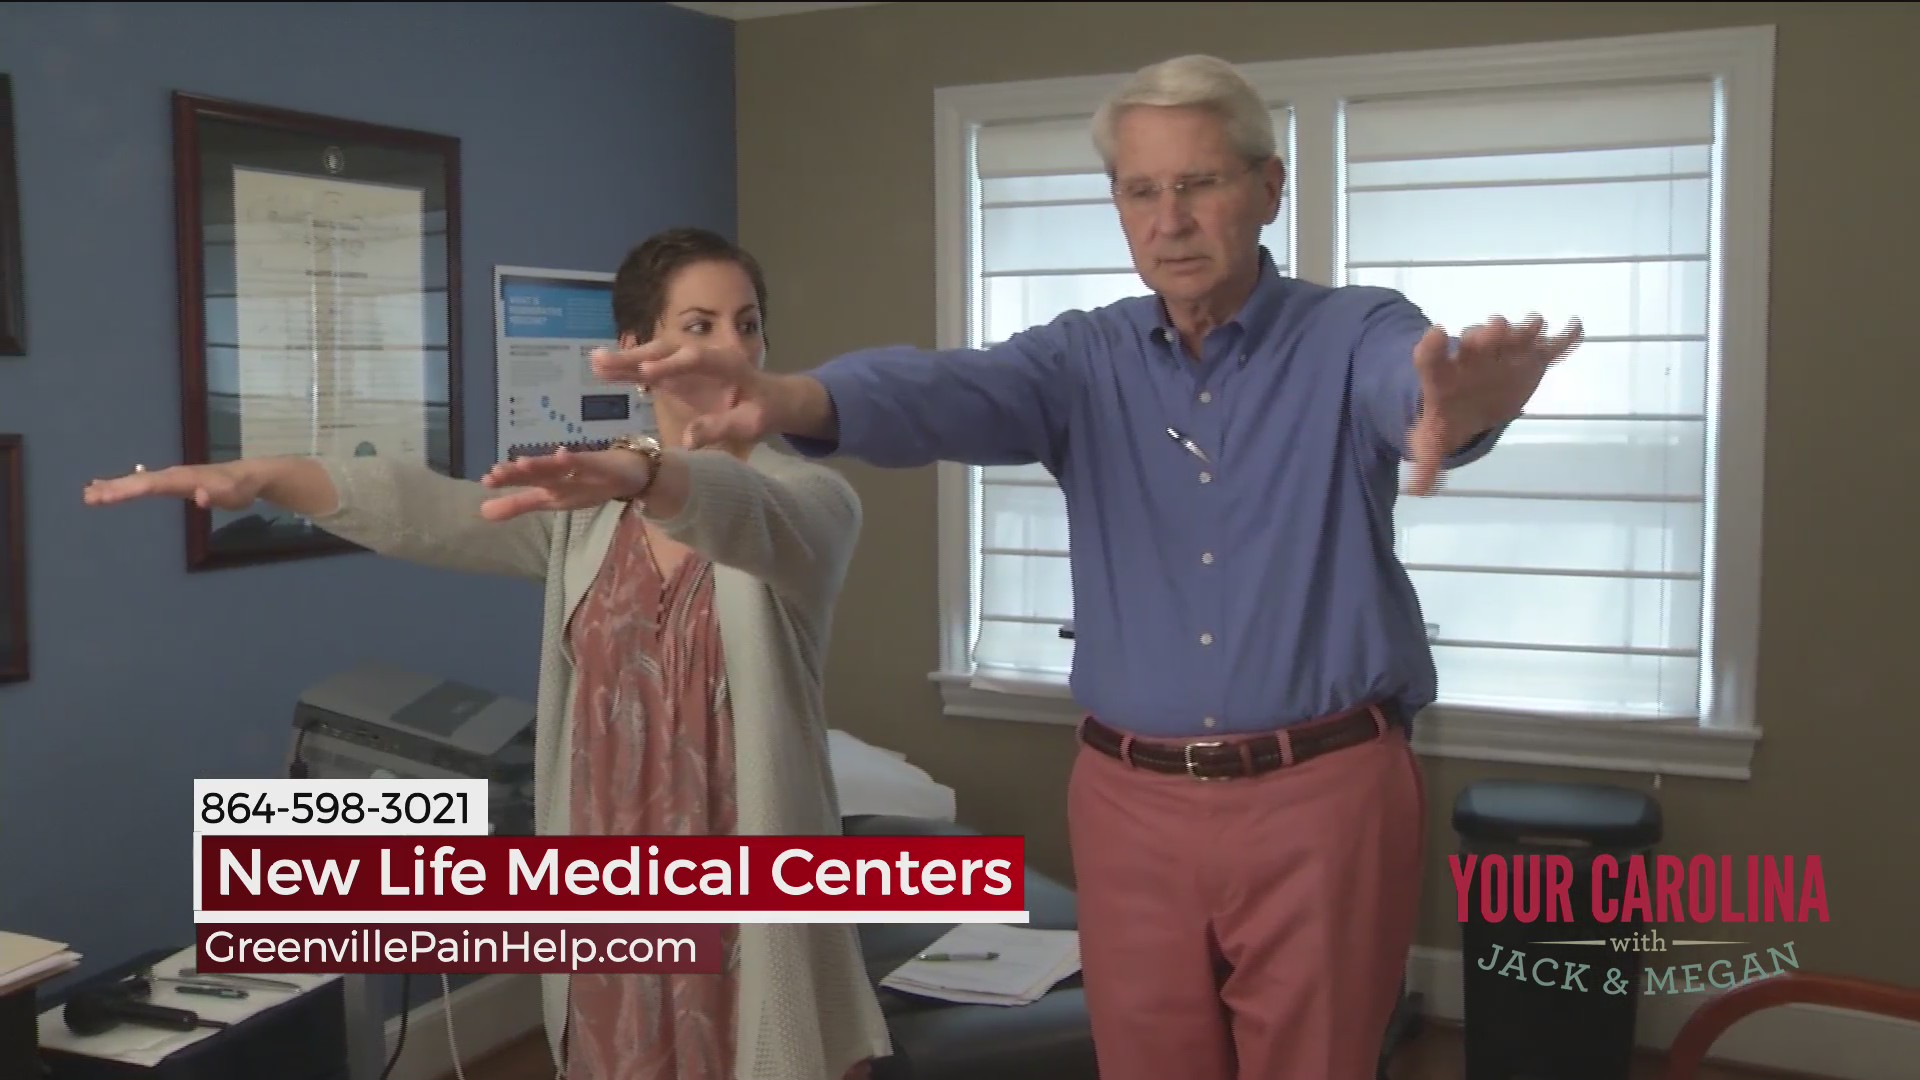 New Life Medical Centers - Offering A Revolutionary Treatment